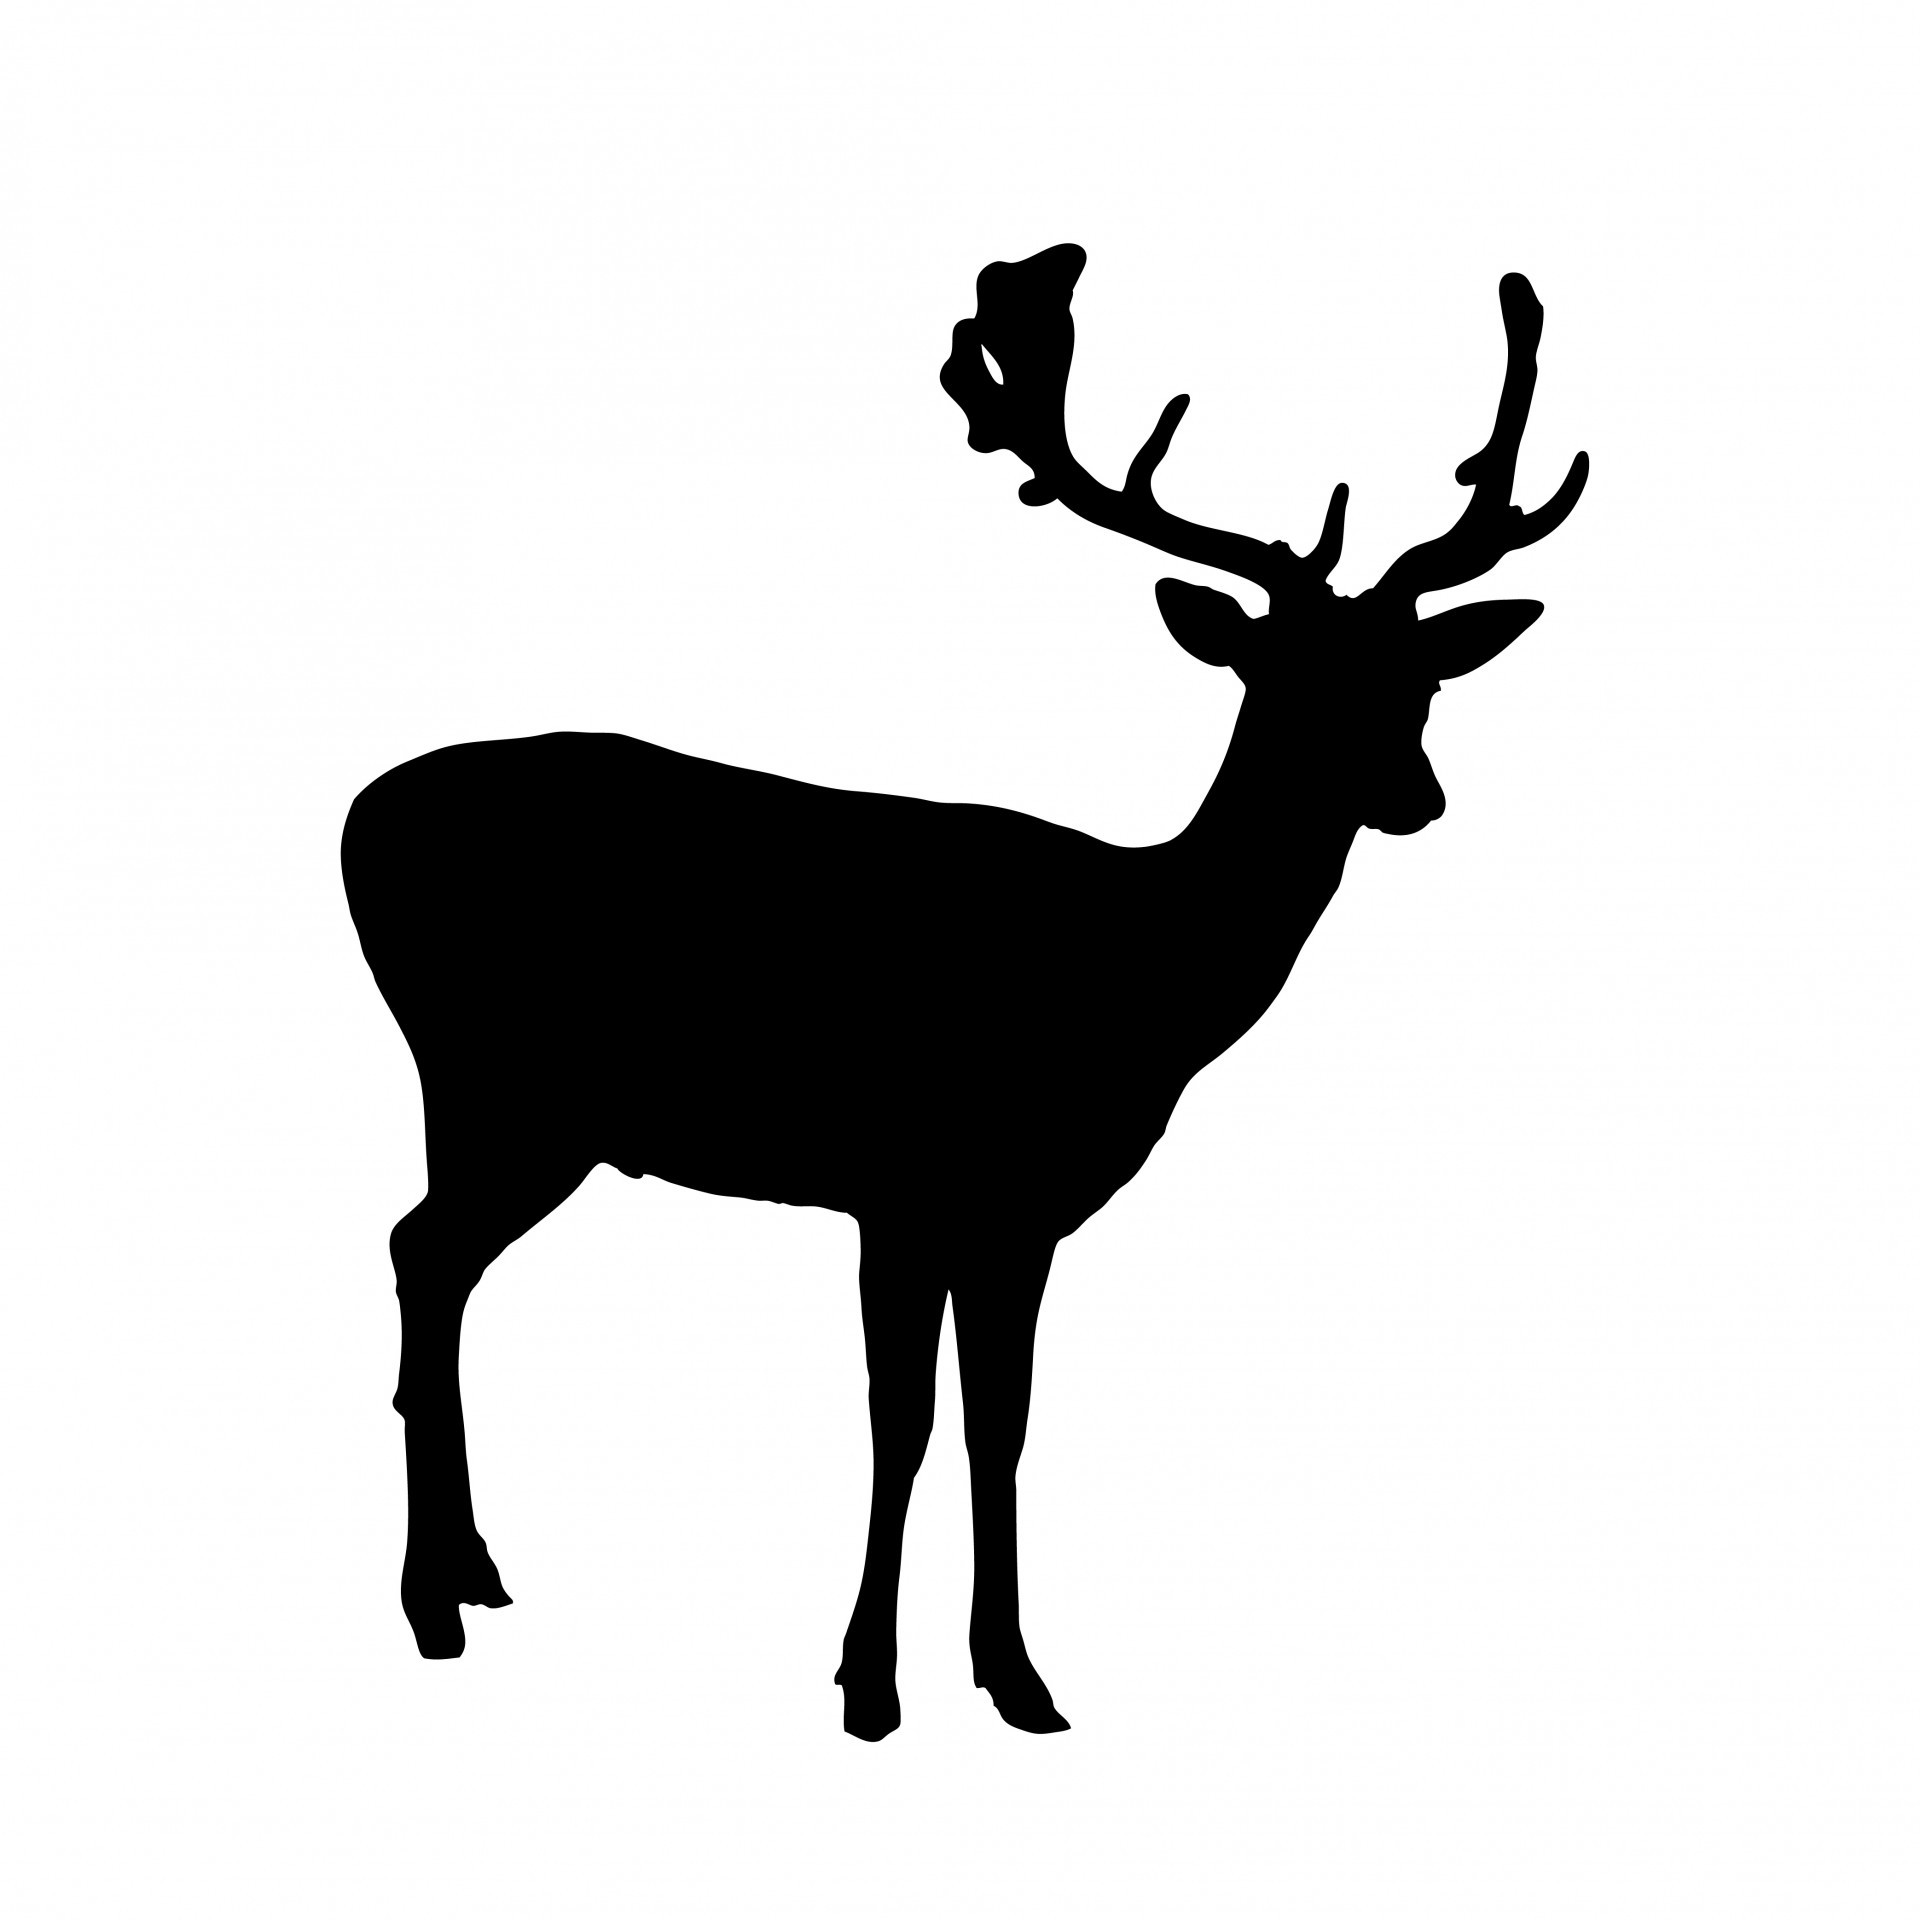 1920x1920 Free Deer Silhouette Download Clip Art On Incredible Clipart